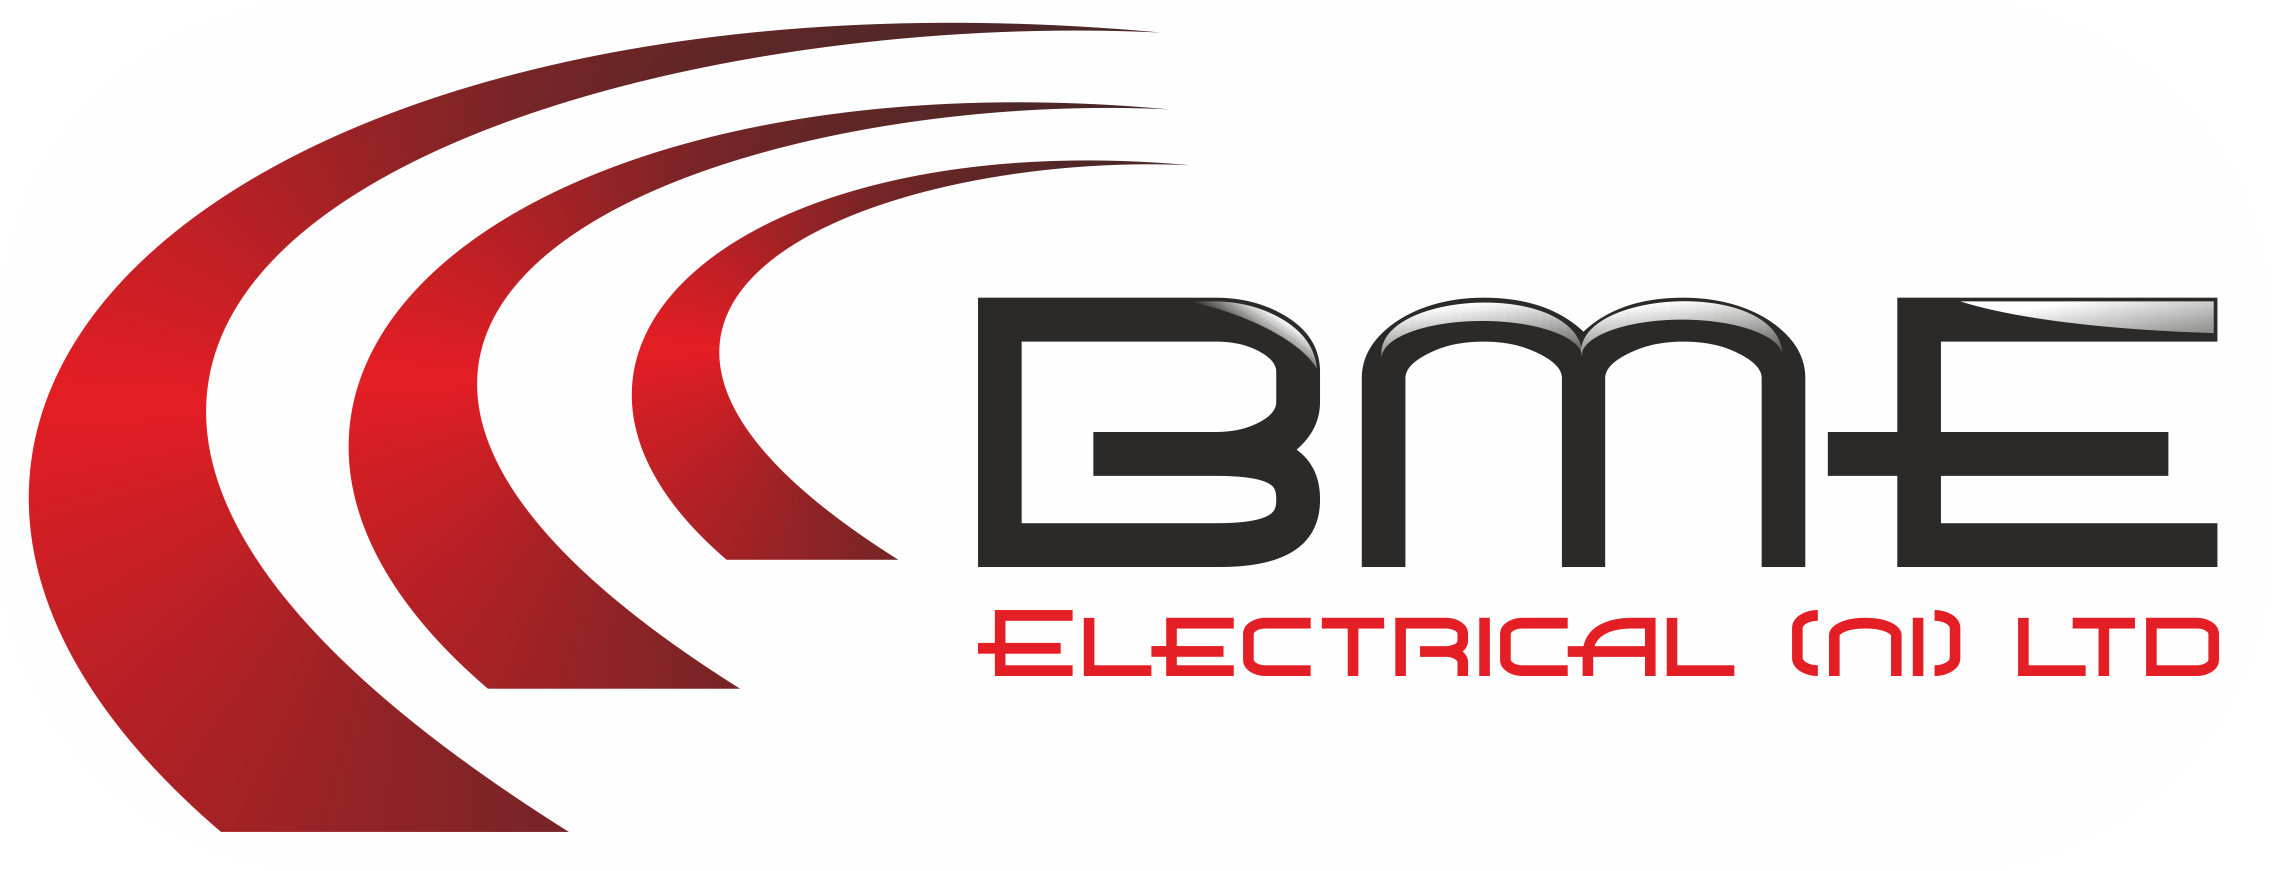 Commercial & Industrial Electrical Contractor